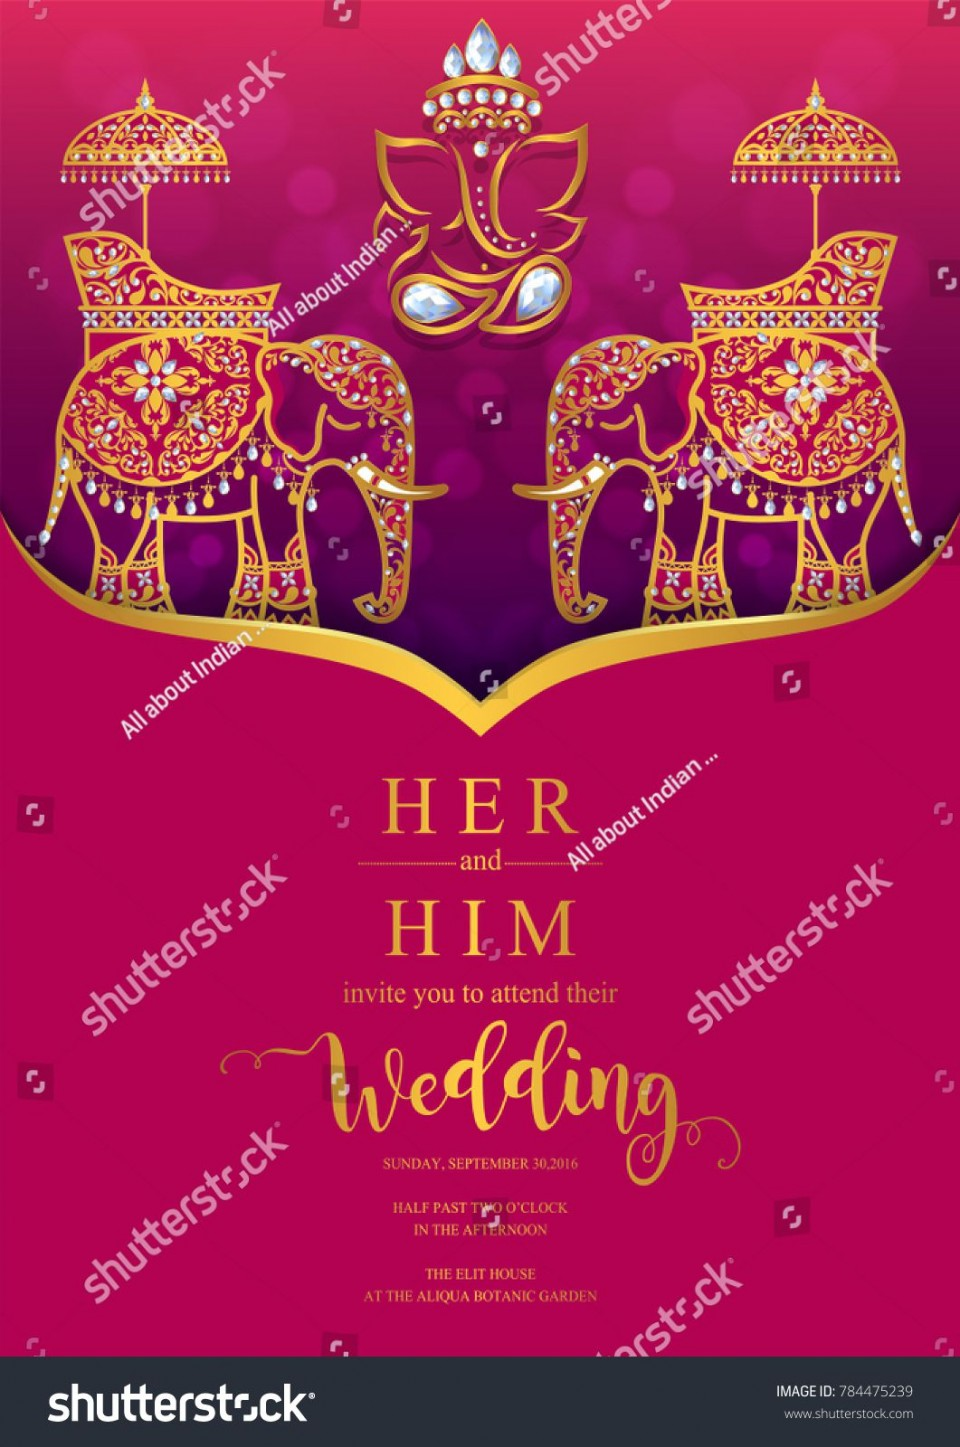 009 Formidable Indian Wedding Invitation Template Inspiration  Psd Free Download Marriage Online For Friend960